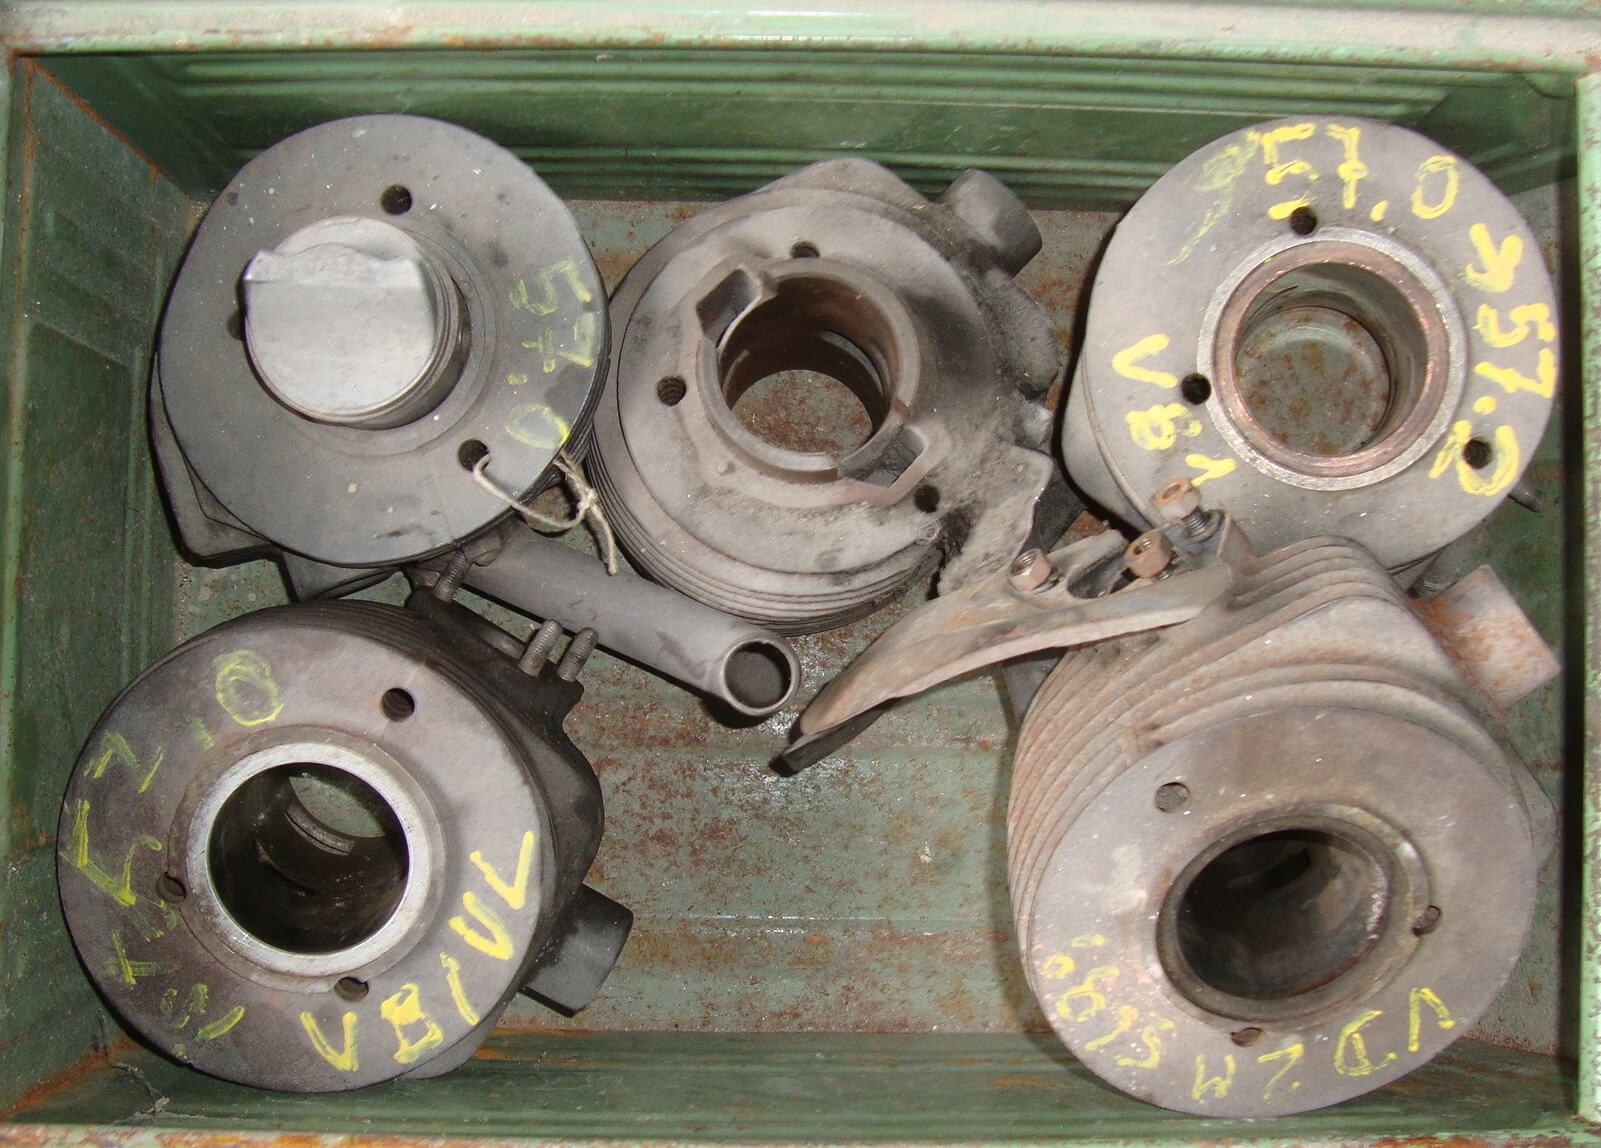 Different Cylinders, Vespa 125 VN - VM - VL - VB